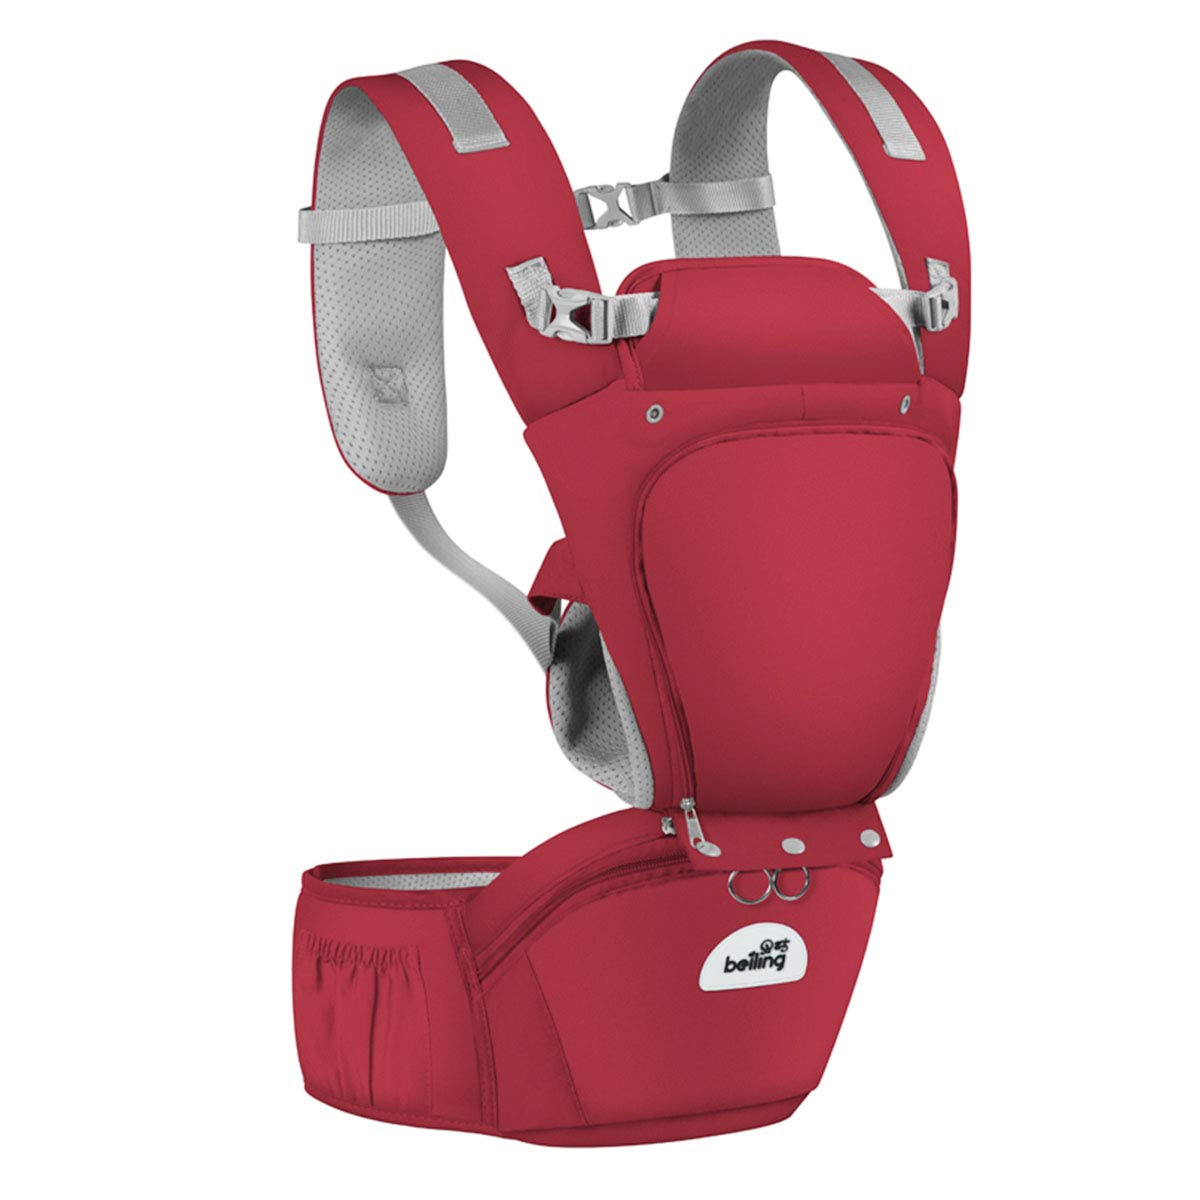 Joly Joy Baby Carrier with Hip Seat, Removable 6-in-1 multifunctional adjustable baby carriers, 360 Ergonomic Baby Carriers Backpack- Adapt to Newborn, Infant & Toddler, All Season Baby Sling JO-BY0001-RD